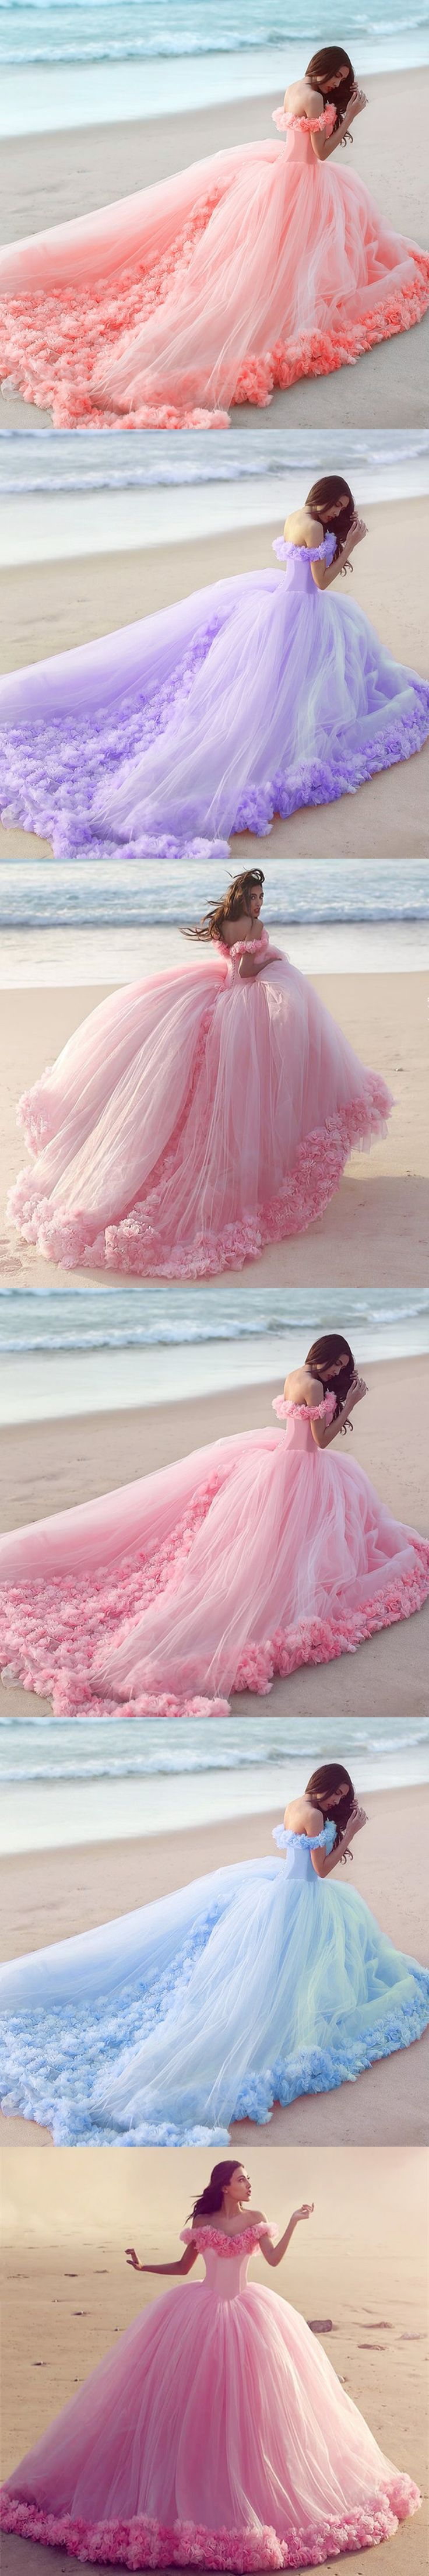 af2d3e792d32 Amazing Ball Gowns Floral Flower Dresses Swing in spring 2017! Available in  pink,coral,lilac,lavender ,light blue color as your quinceanera dresses! it  will ...